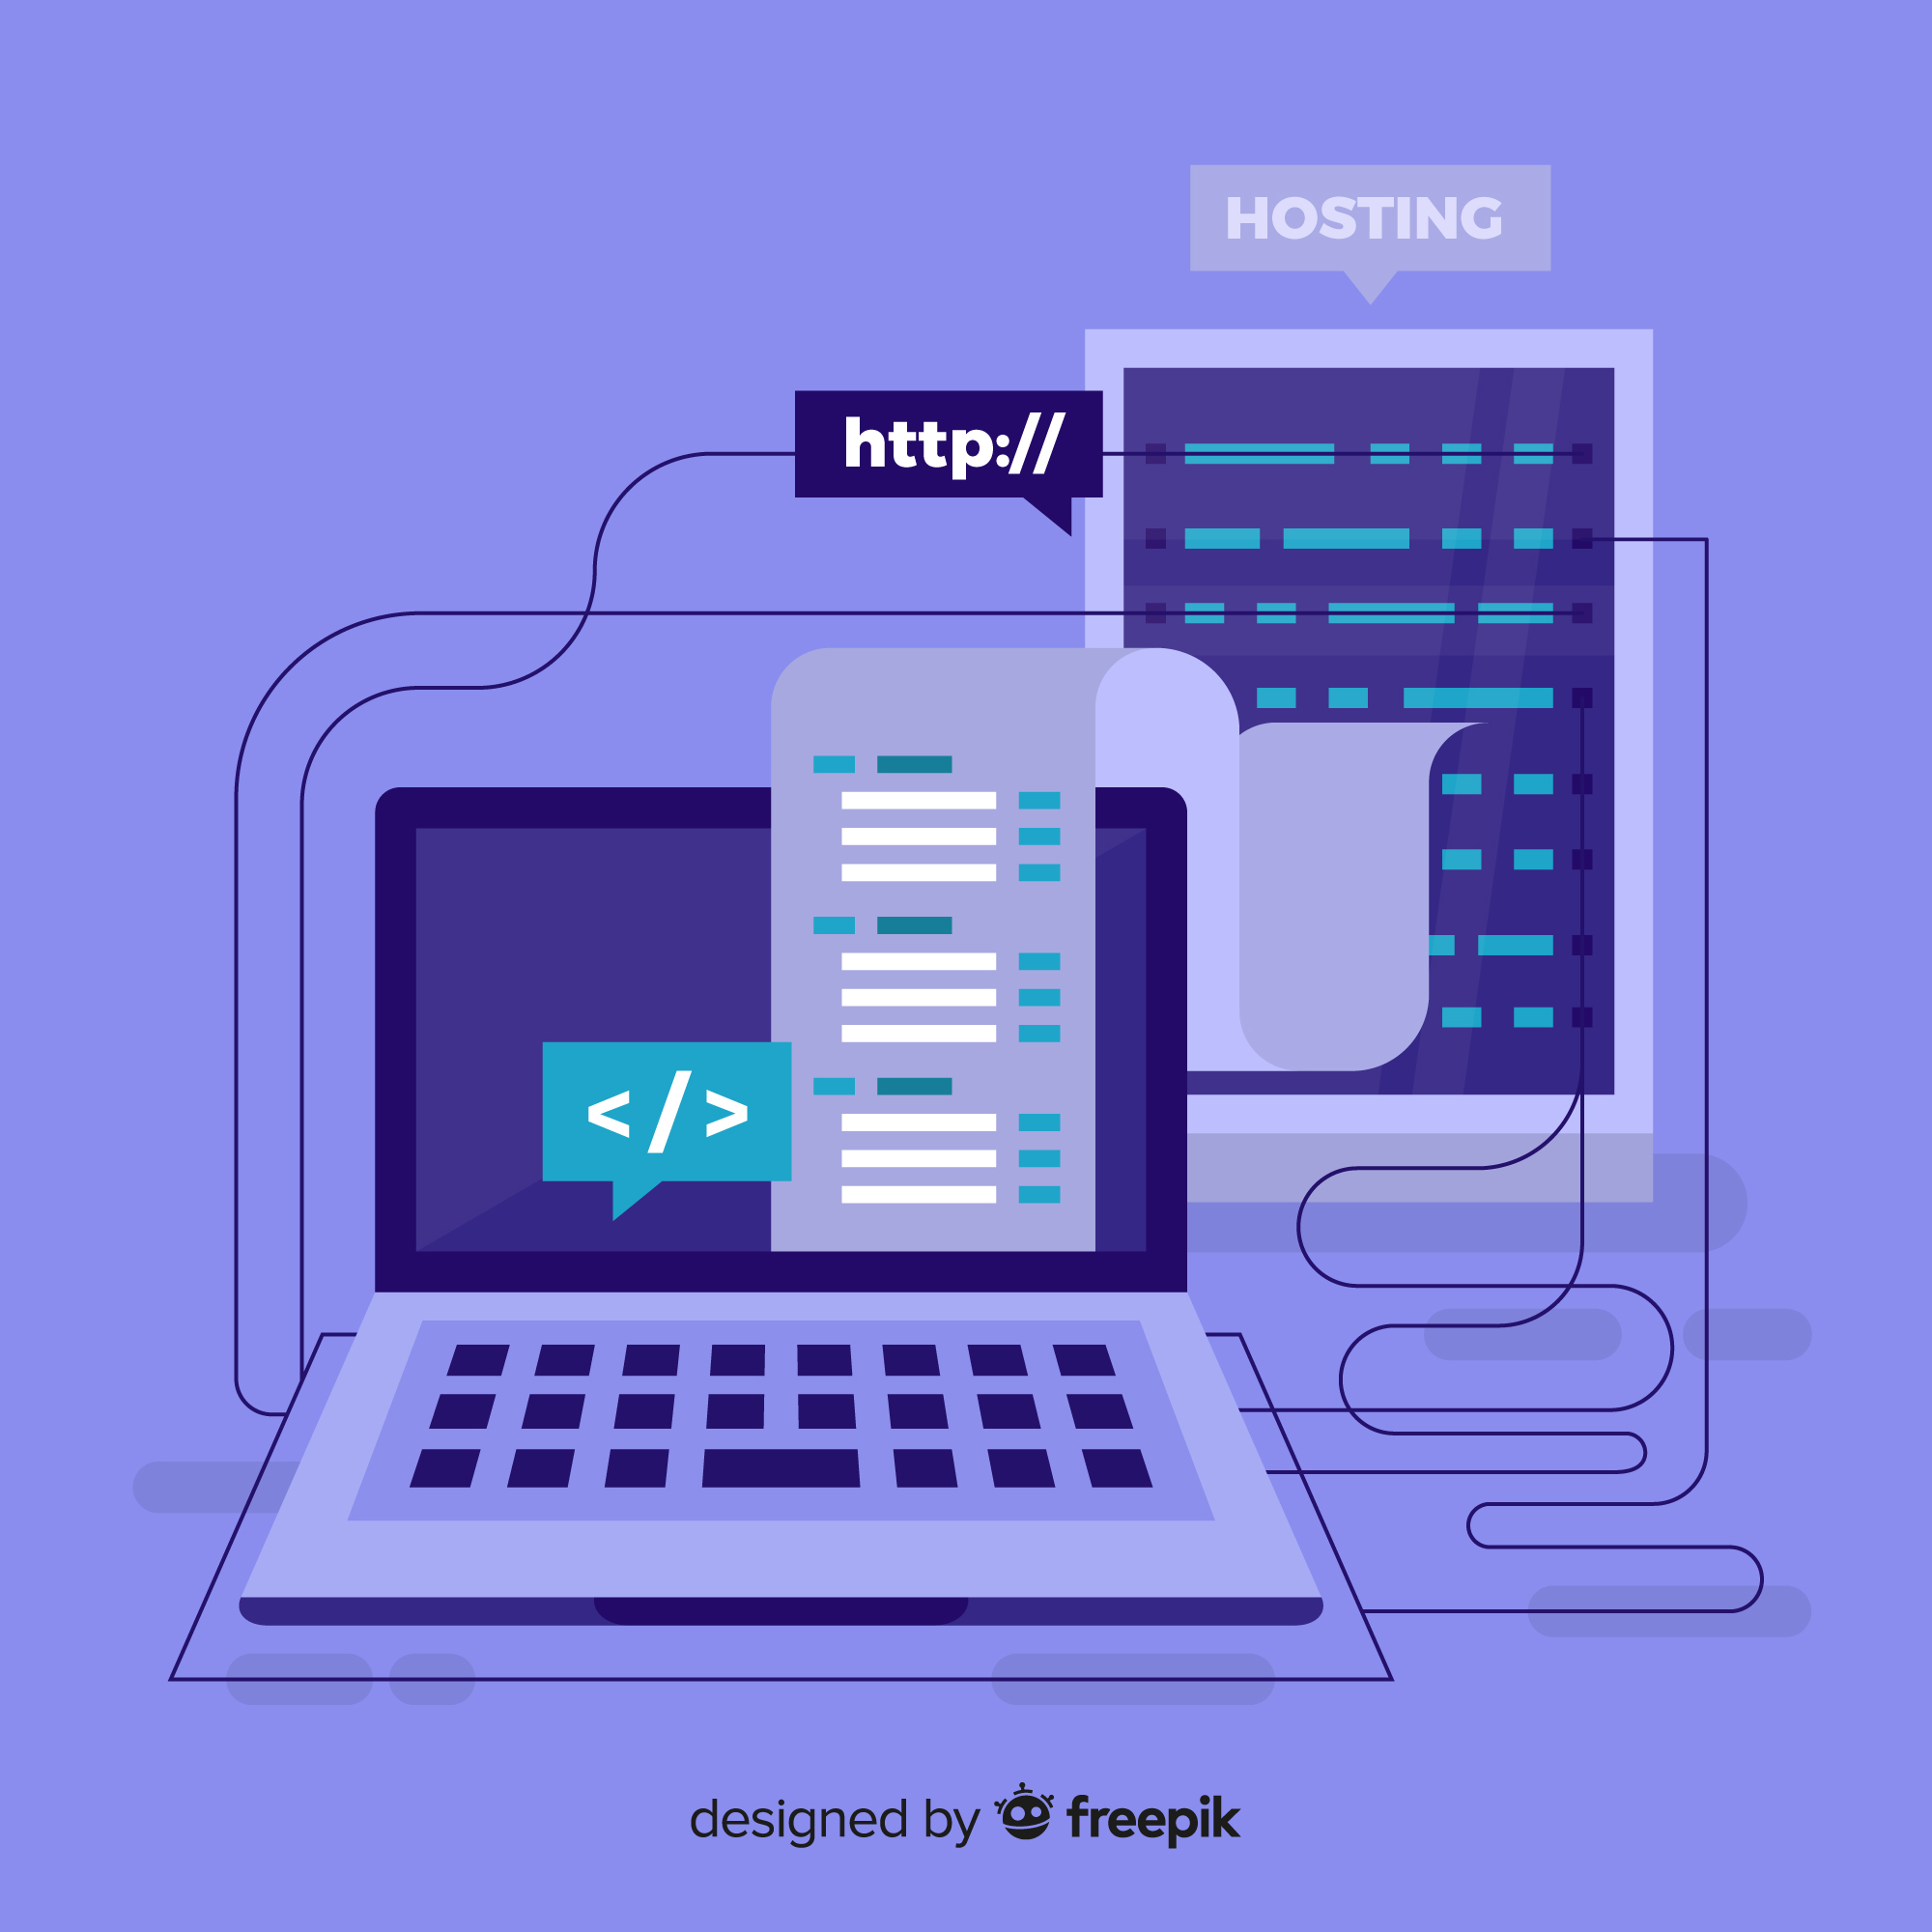 illustration of laptop connected to web host with free ssl